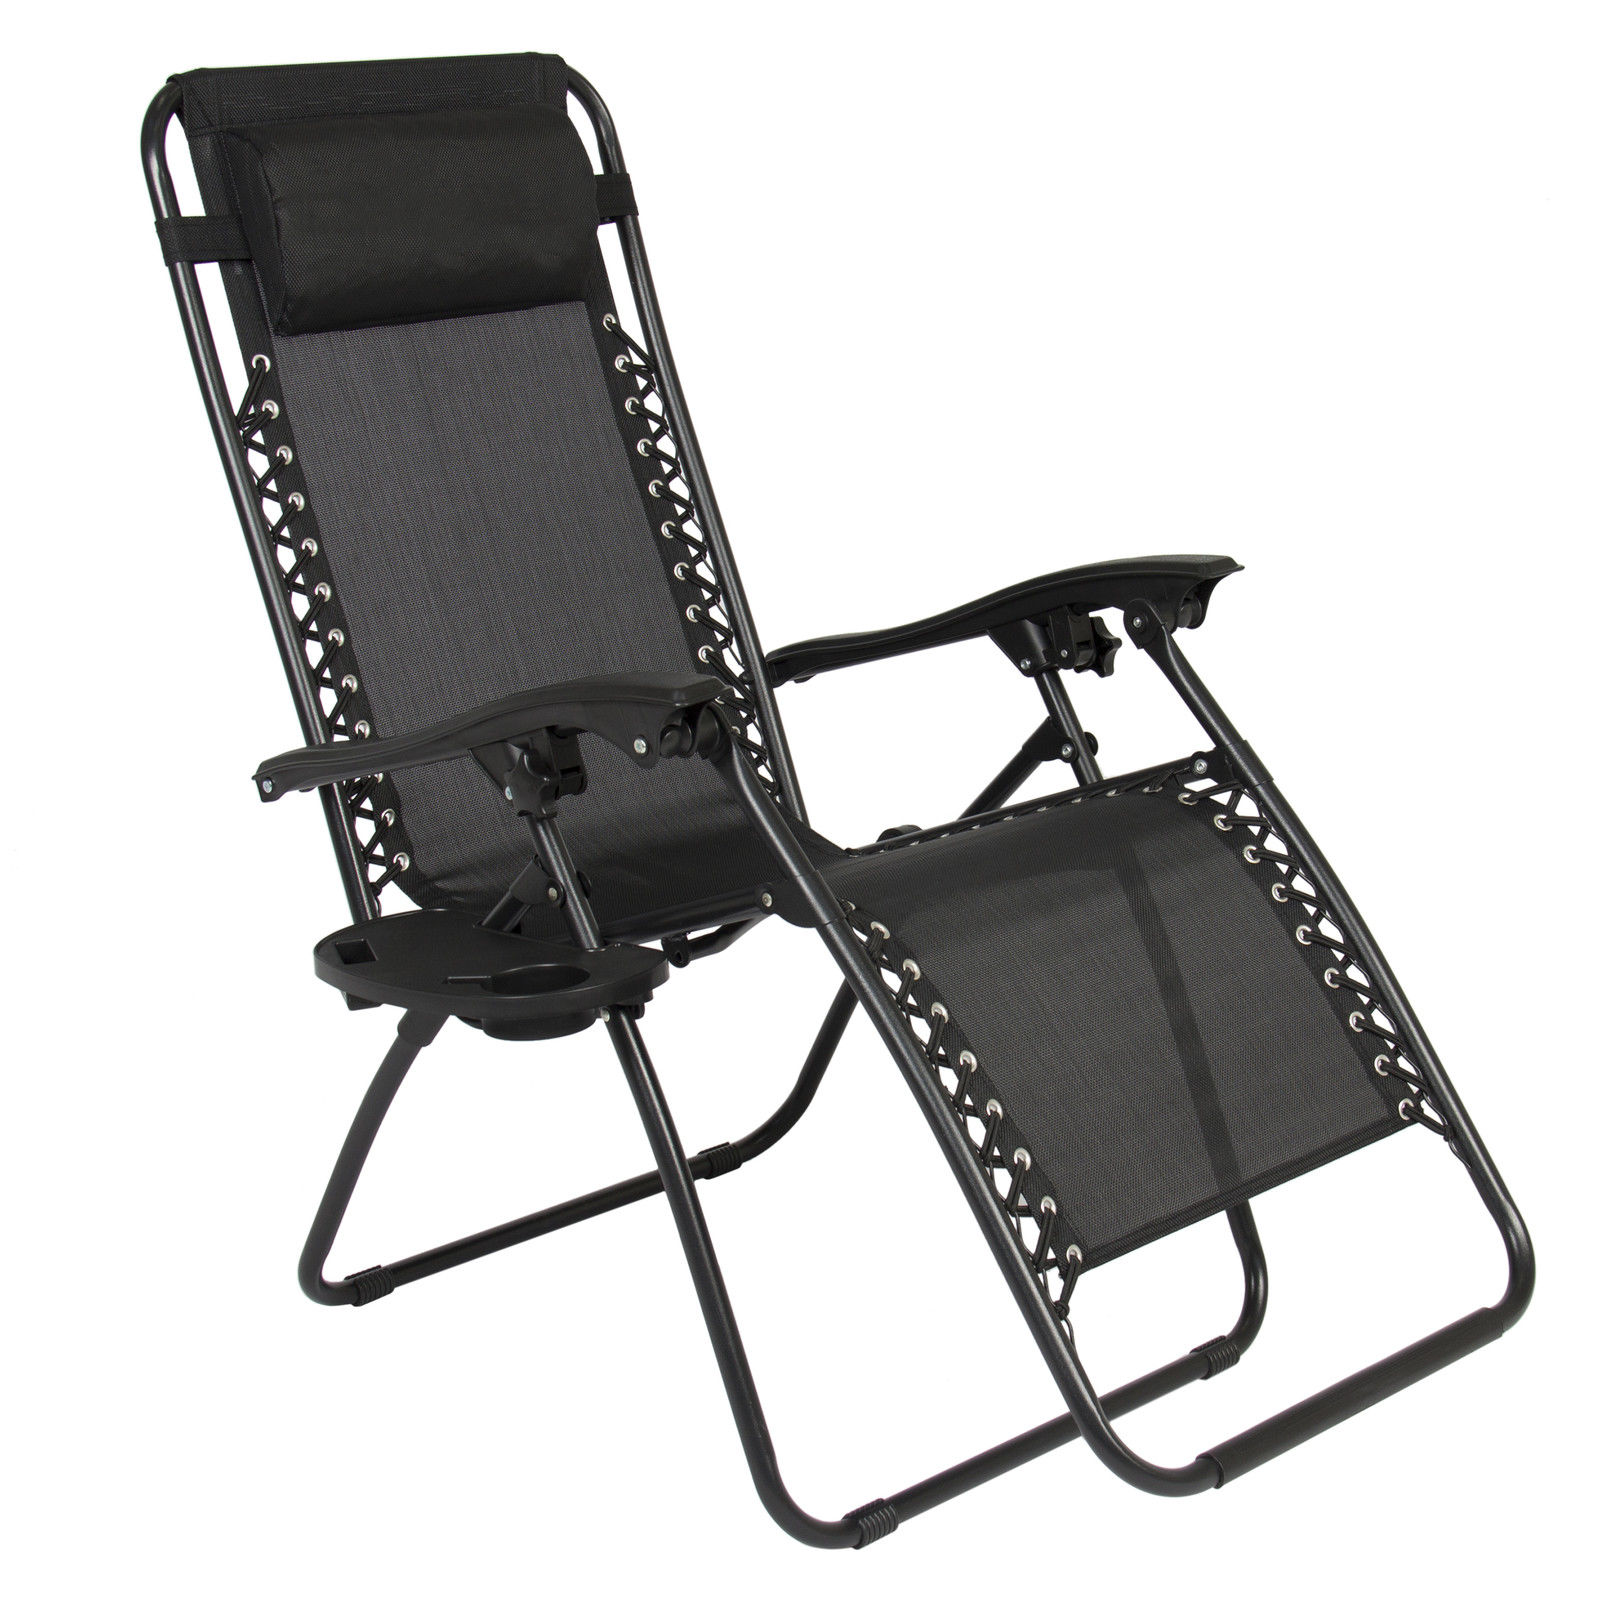 Folding Lounge Chairs 2 X Zero Gravity Chairs Lounge Patio Folding Recliner